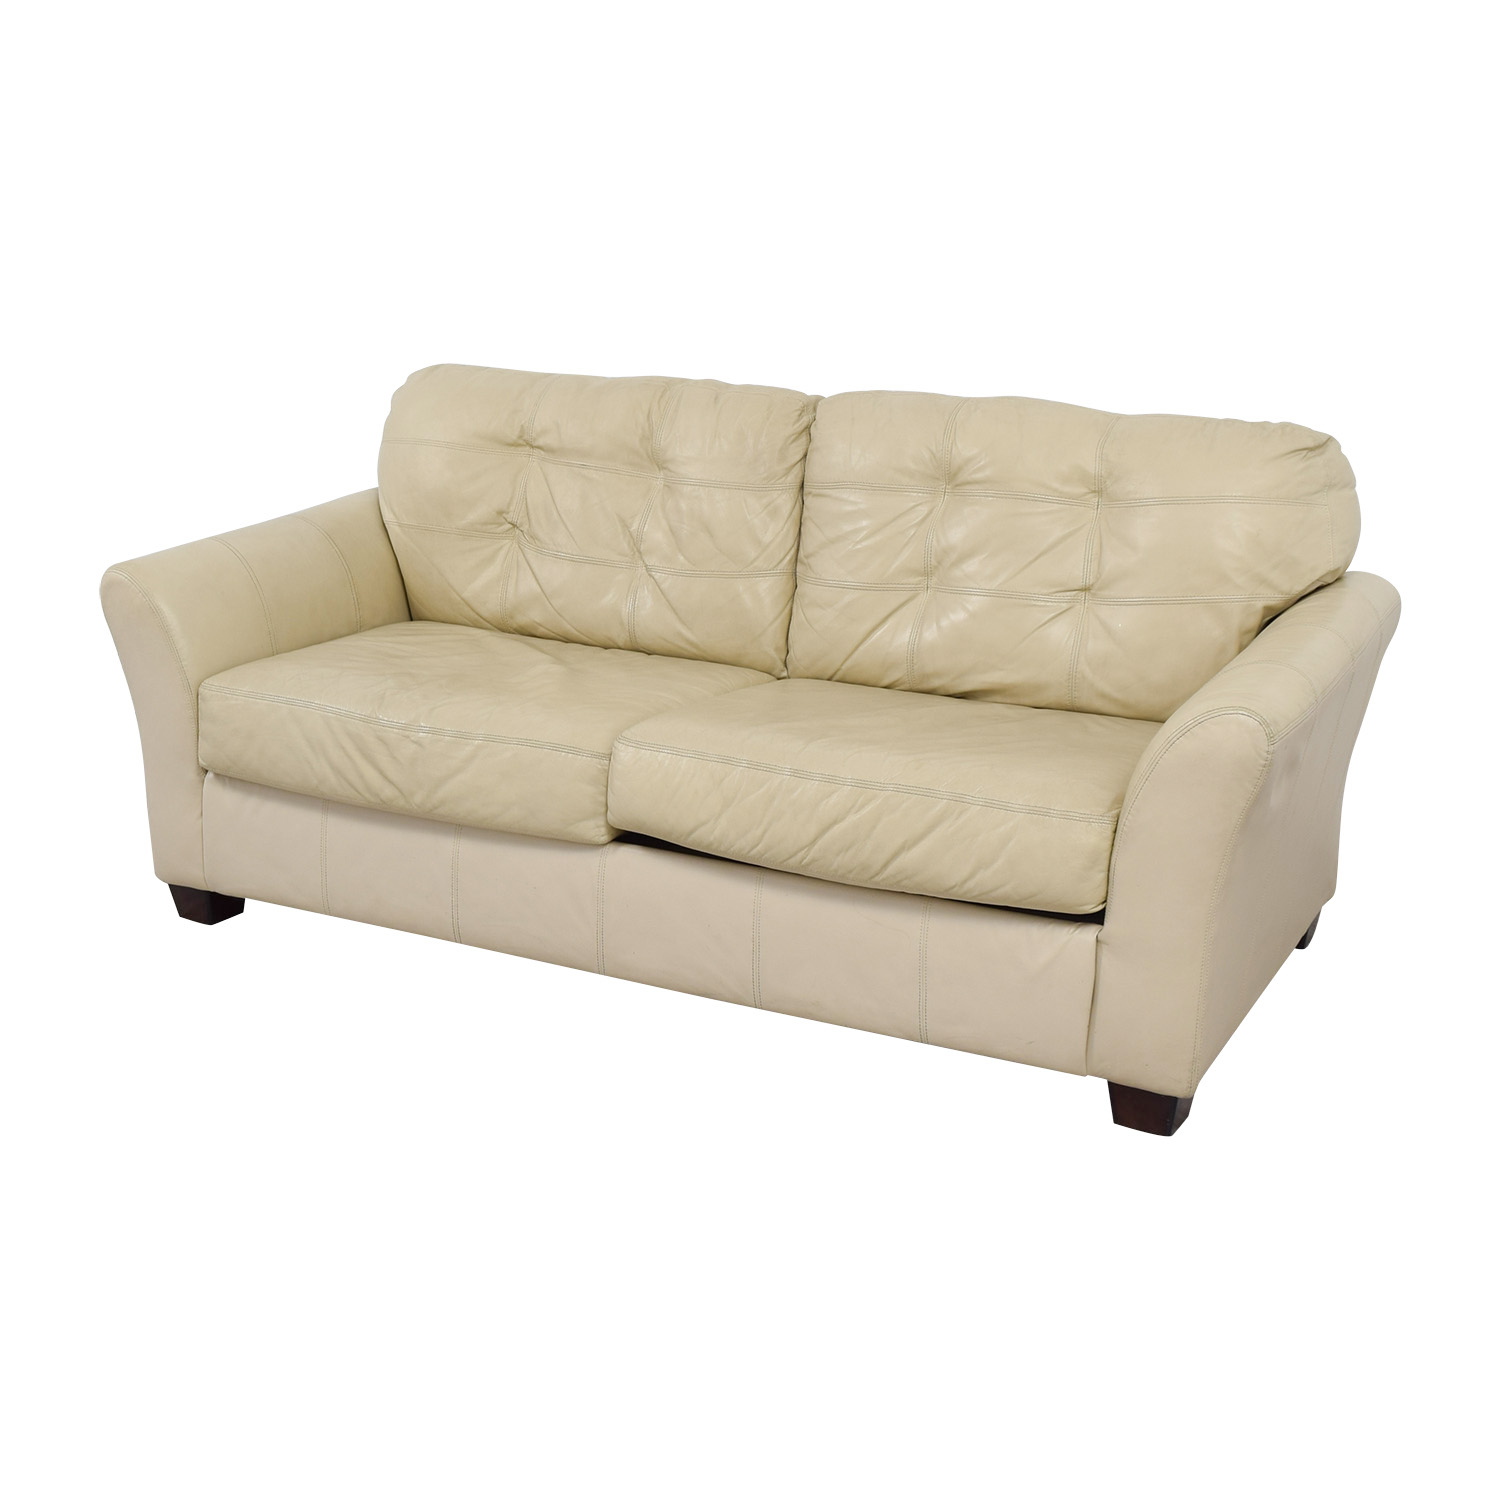 Cream leather sofas for Used leather sofa set